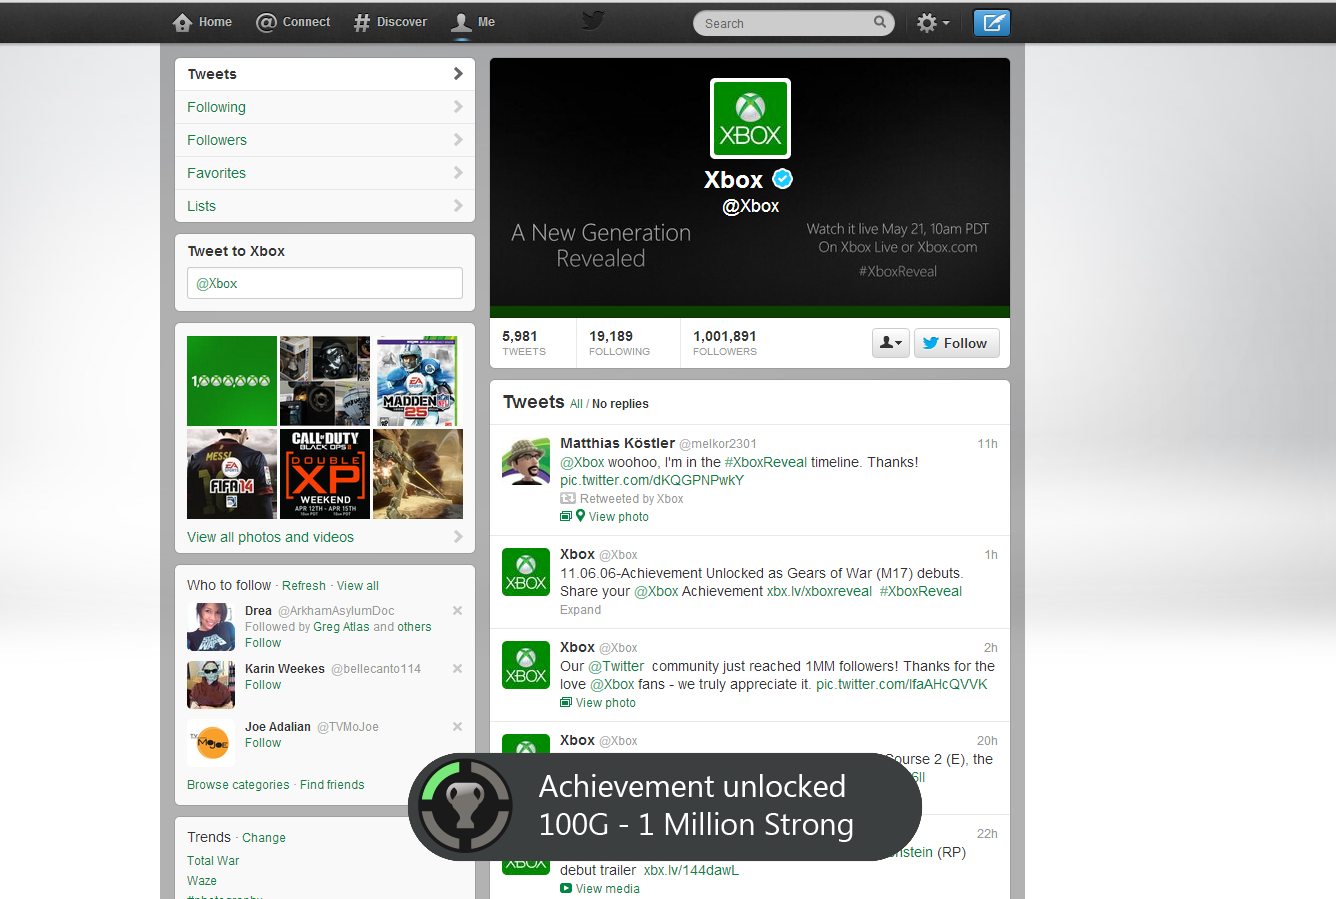 Congrats to @Xbox for reaching 1 million Twitter followers! *cue achievement unlocked sound* http://t.co/HIGKQxiyu0